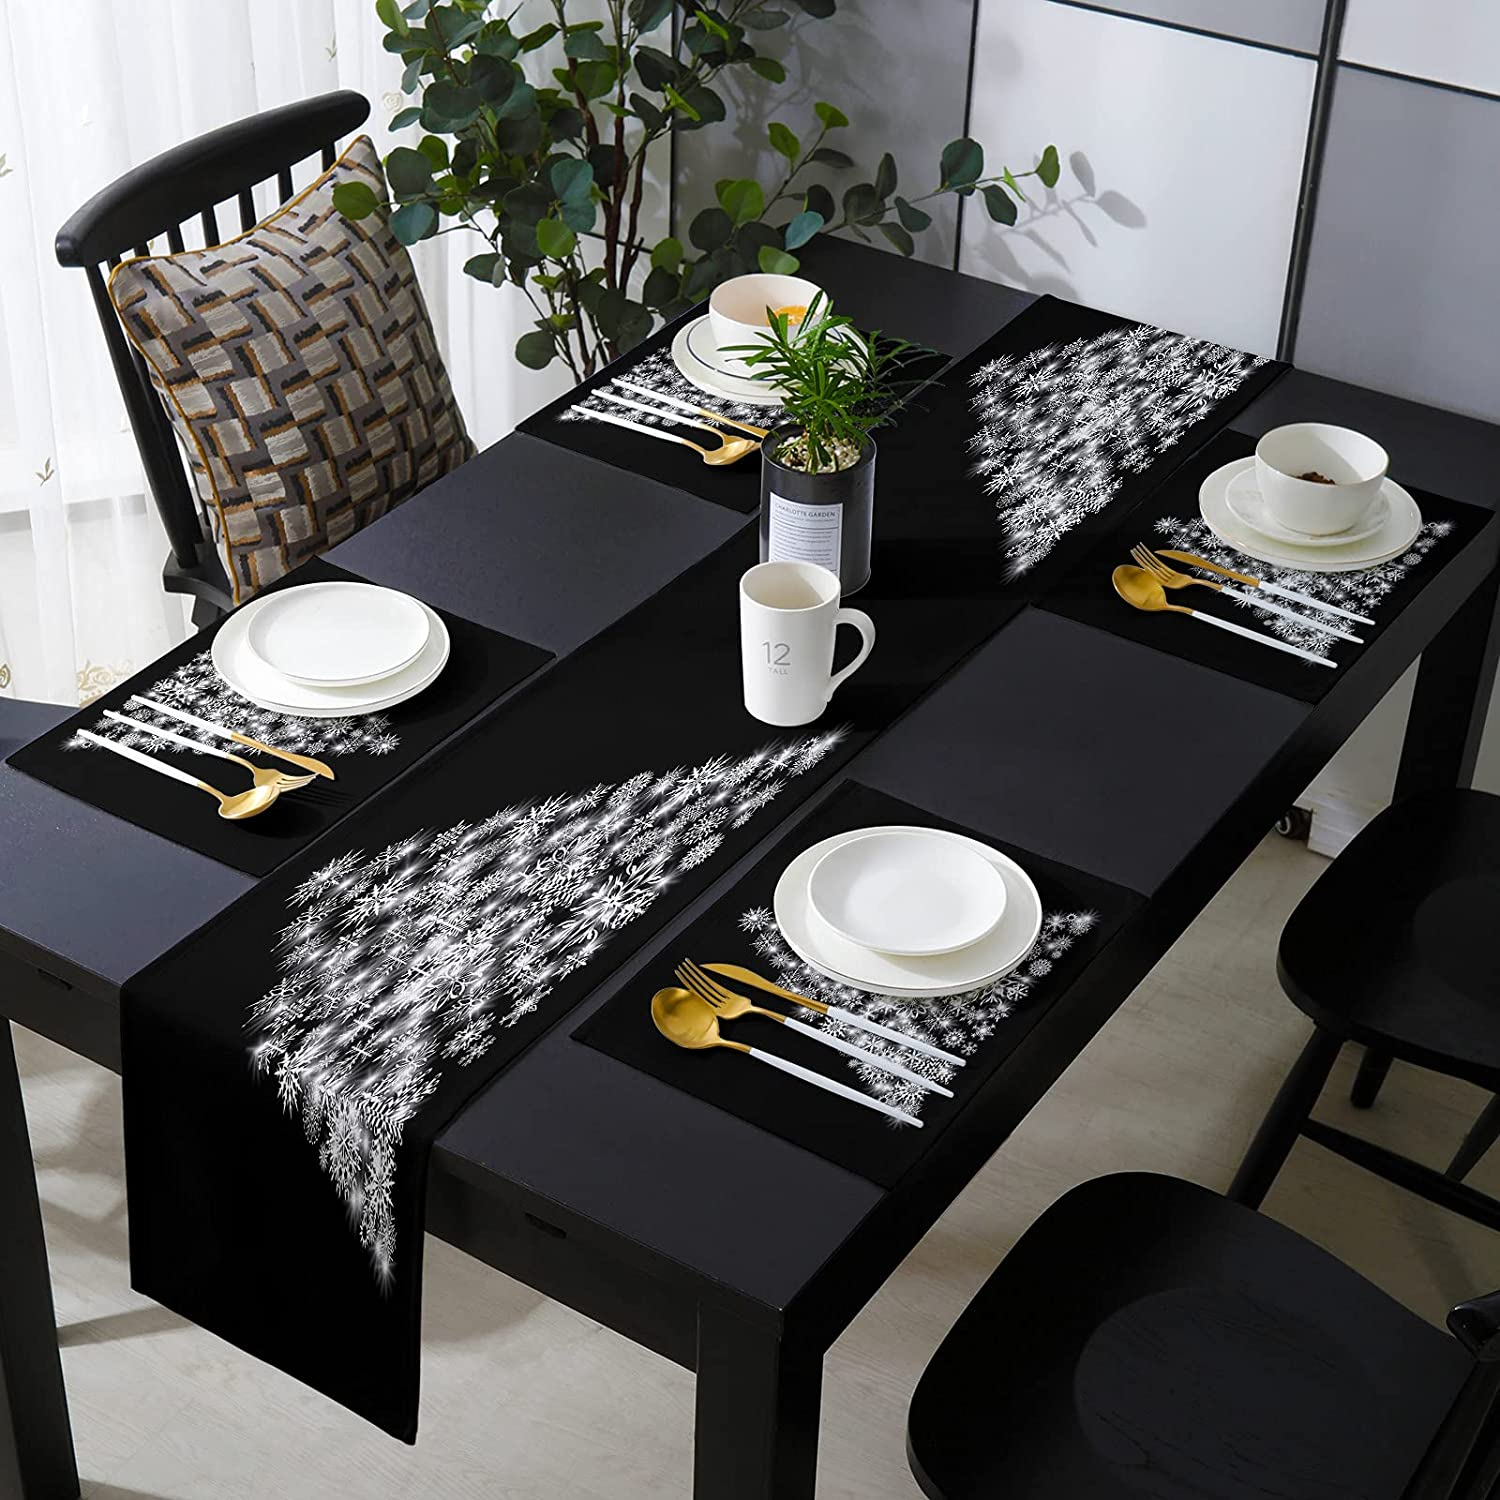 Fantasy Staring 16 x 72 Inch Wholesale Set with Runner of Placemats Rapid rise Table